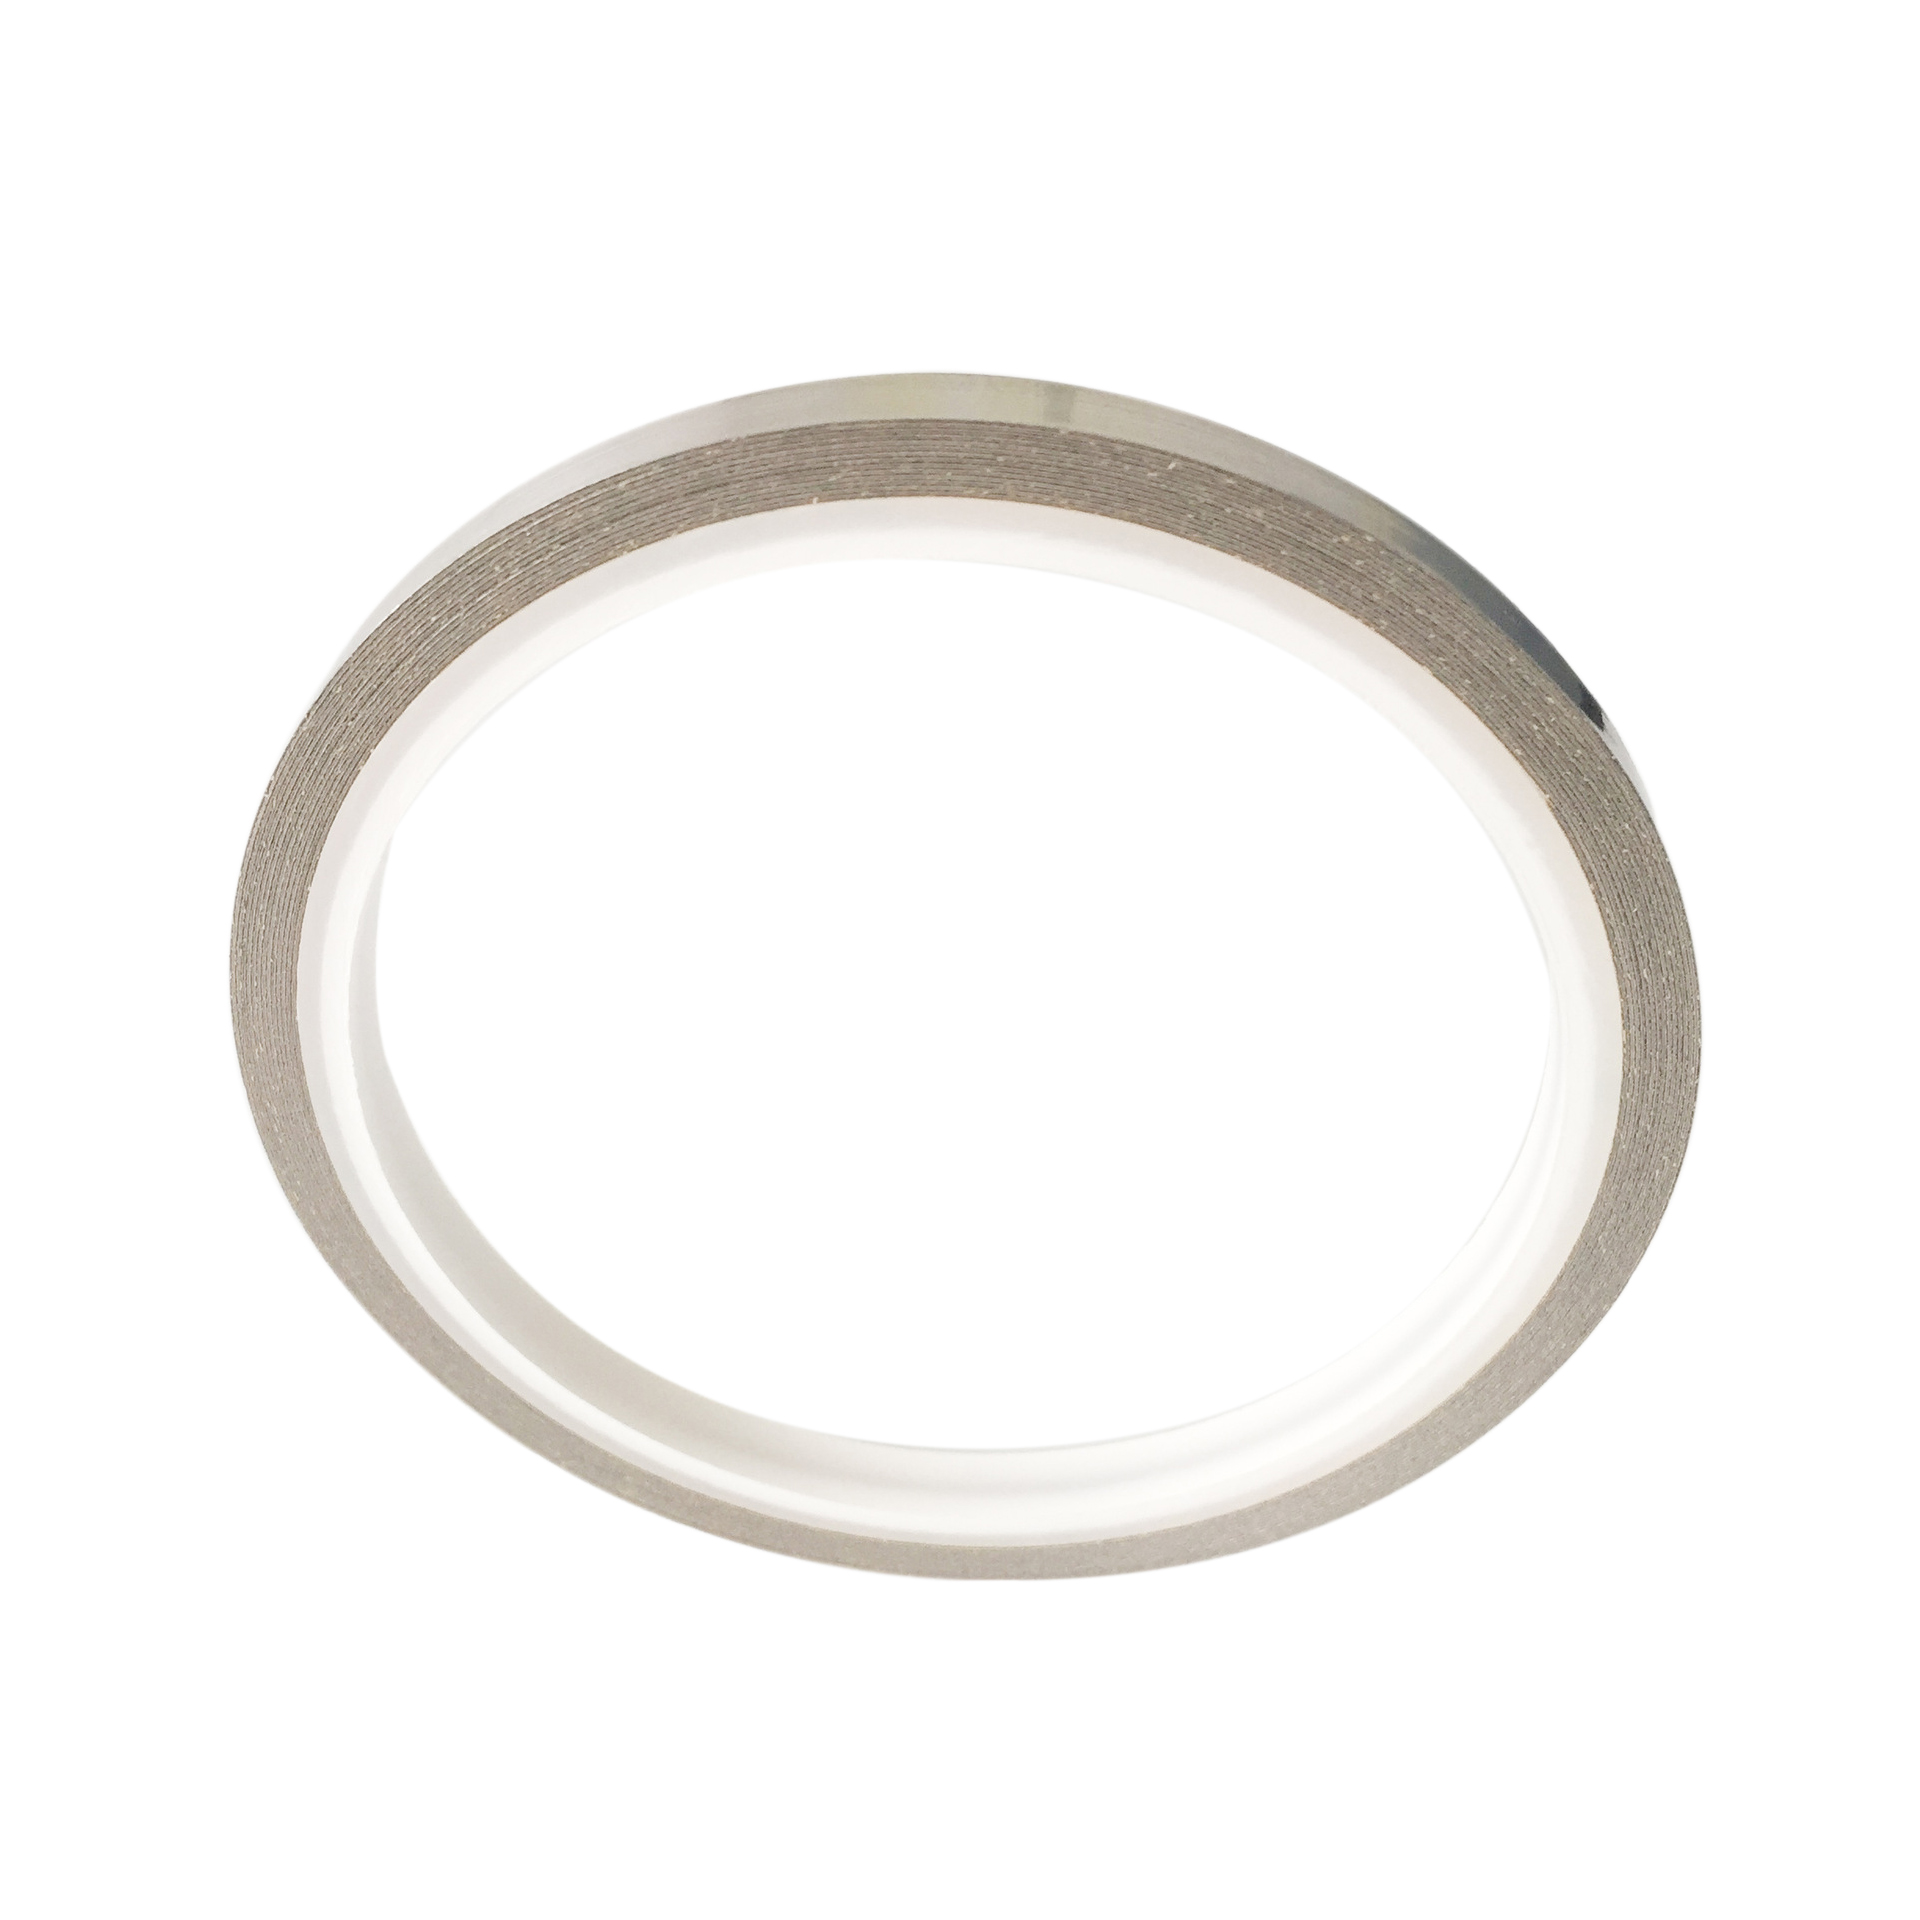 Quality Tennis Racquet Lead Tape Weight Silver Self-Adhesion 4 Meter/Roll Add Weight & Power To Racquet